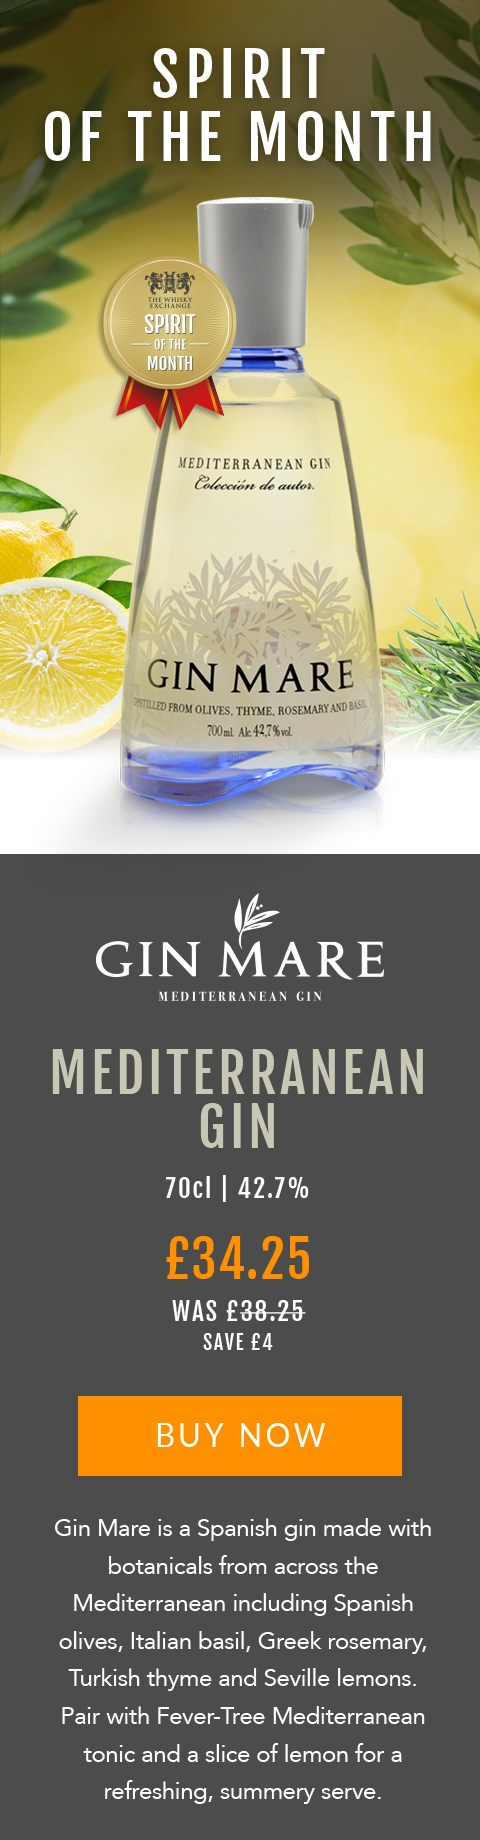 SPIRIT OF THE MONTH  Gin Mare Mediterranean Gin  70cl | 42.7%  £34.25 (was £38.25)  Save £4  BUY NOW> https://www.thewhiskyexchange.com/feature/spiritofthemonth  Gin Mare is a Spanish gin made with botanicals from across the Mediterranean including Spanish olives, Italian basil, Greek rosemary, Turkish thyme and Seville lemons. Pair with Fever-Tree Mediterranean tonic and a slice of lemon for a refreshing, summery serve.